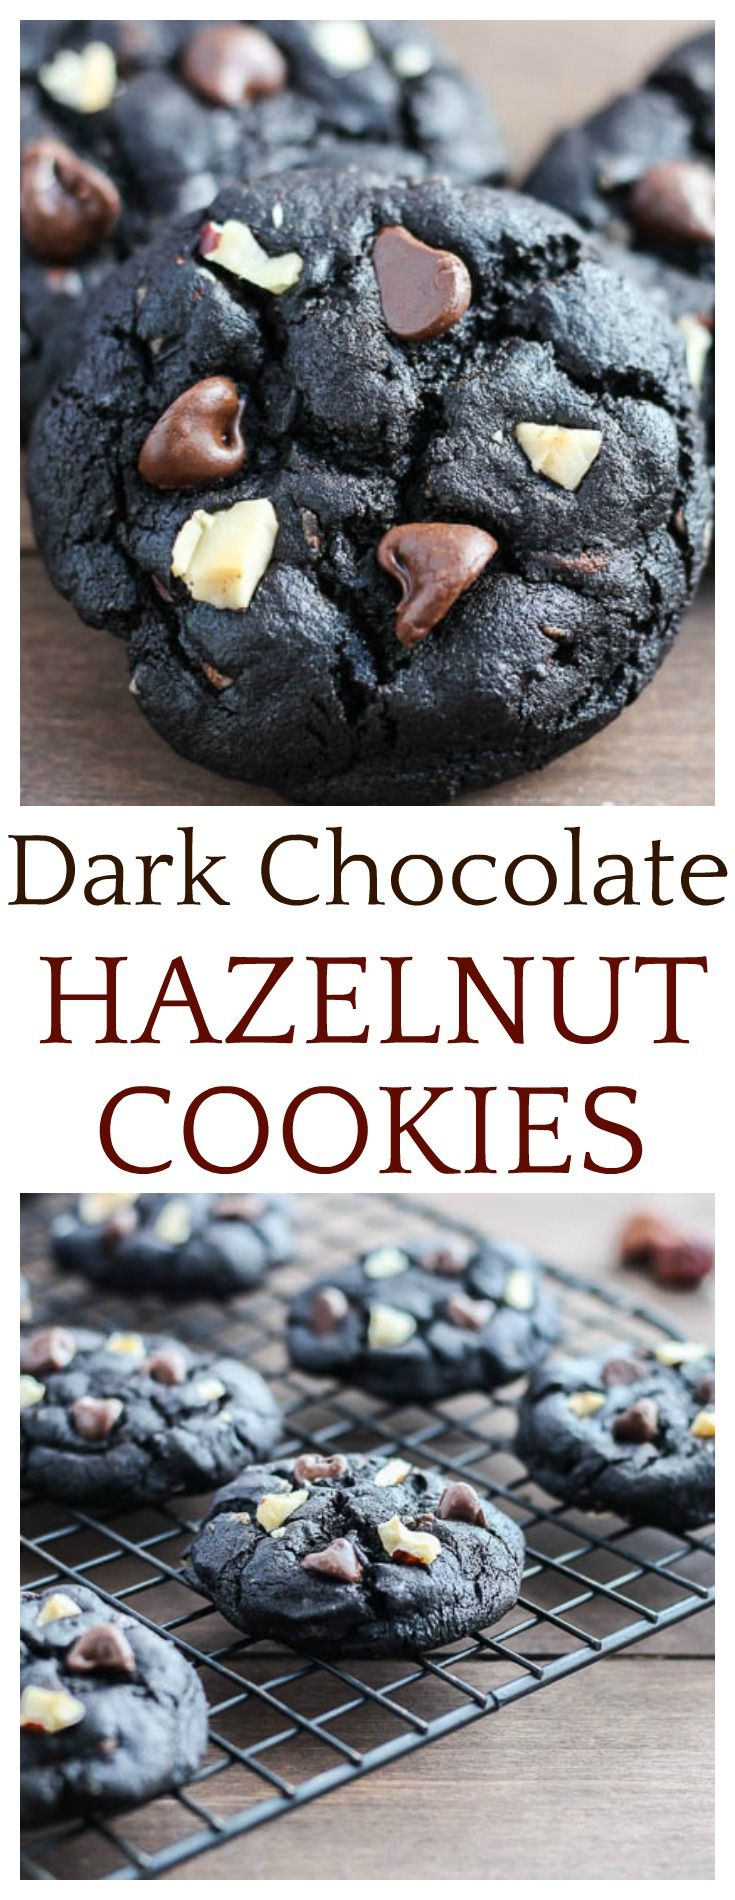 Loaded with rich chocolate flavors and chopped hazelnuts, these Dark Chocolate Hazelnut Cookies are delicious without being overly sweet! They are the perfect cookie to share with loved ones his holiday season!